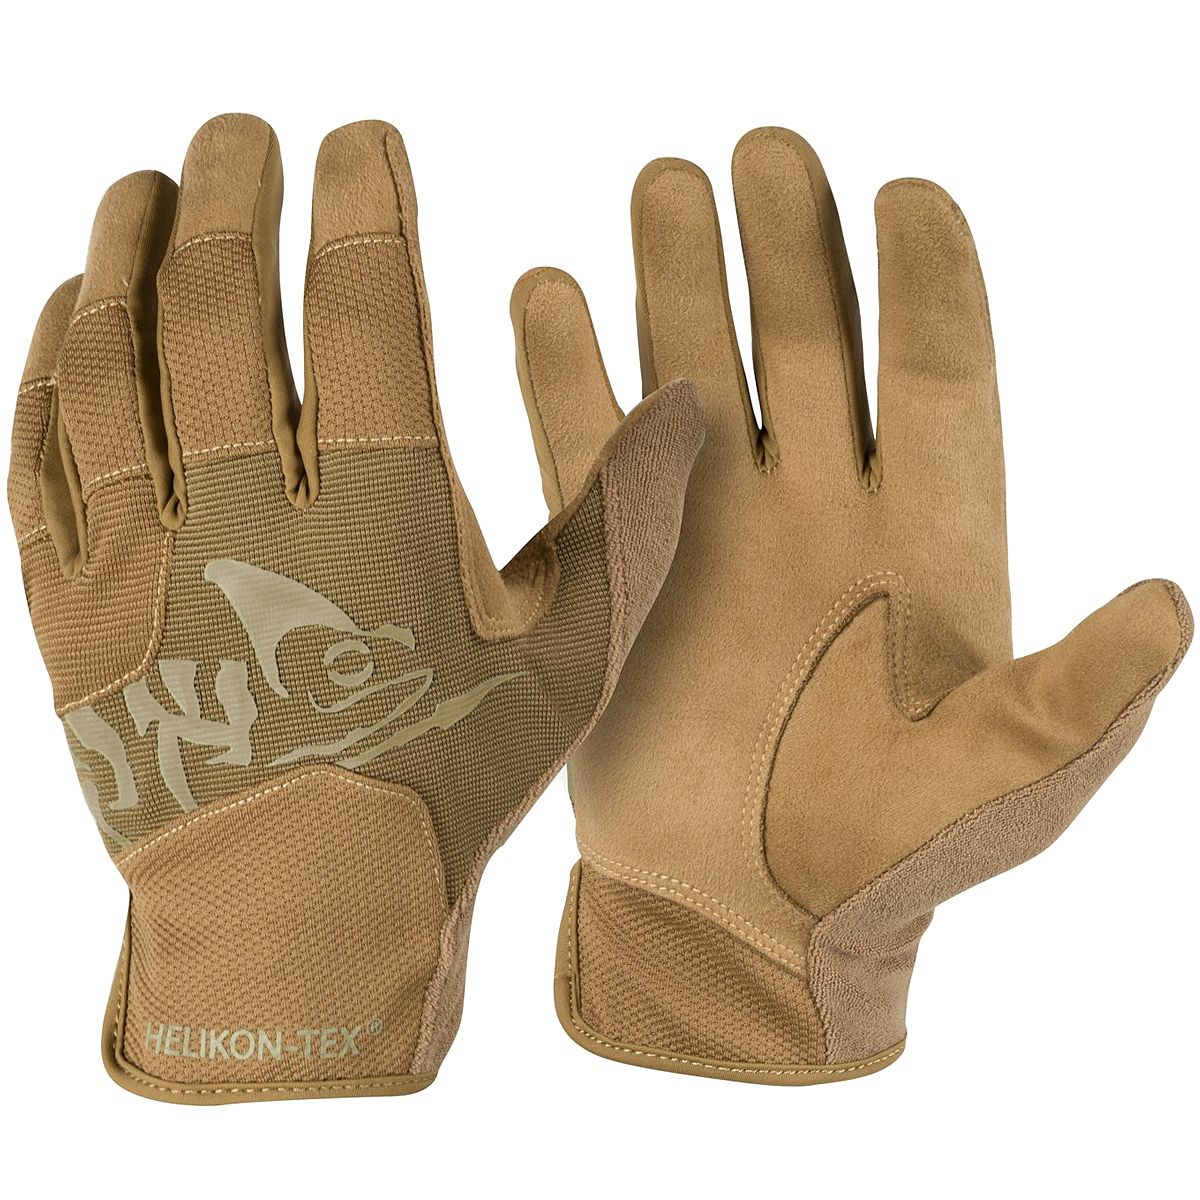 Helikon All Round Fit Gloves Coyote / Adaptive Green product image